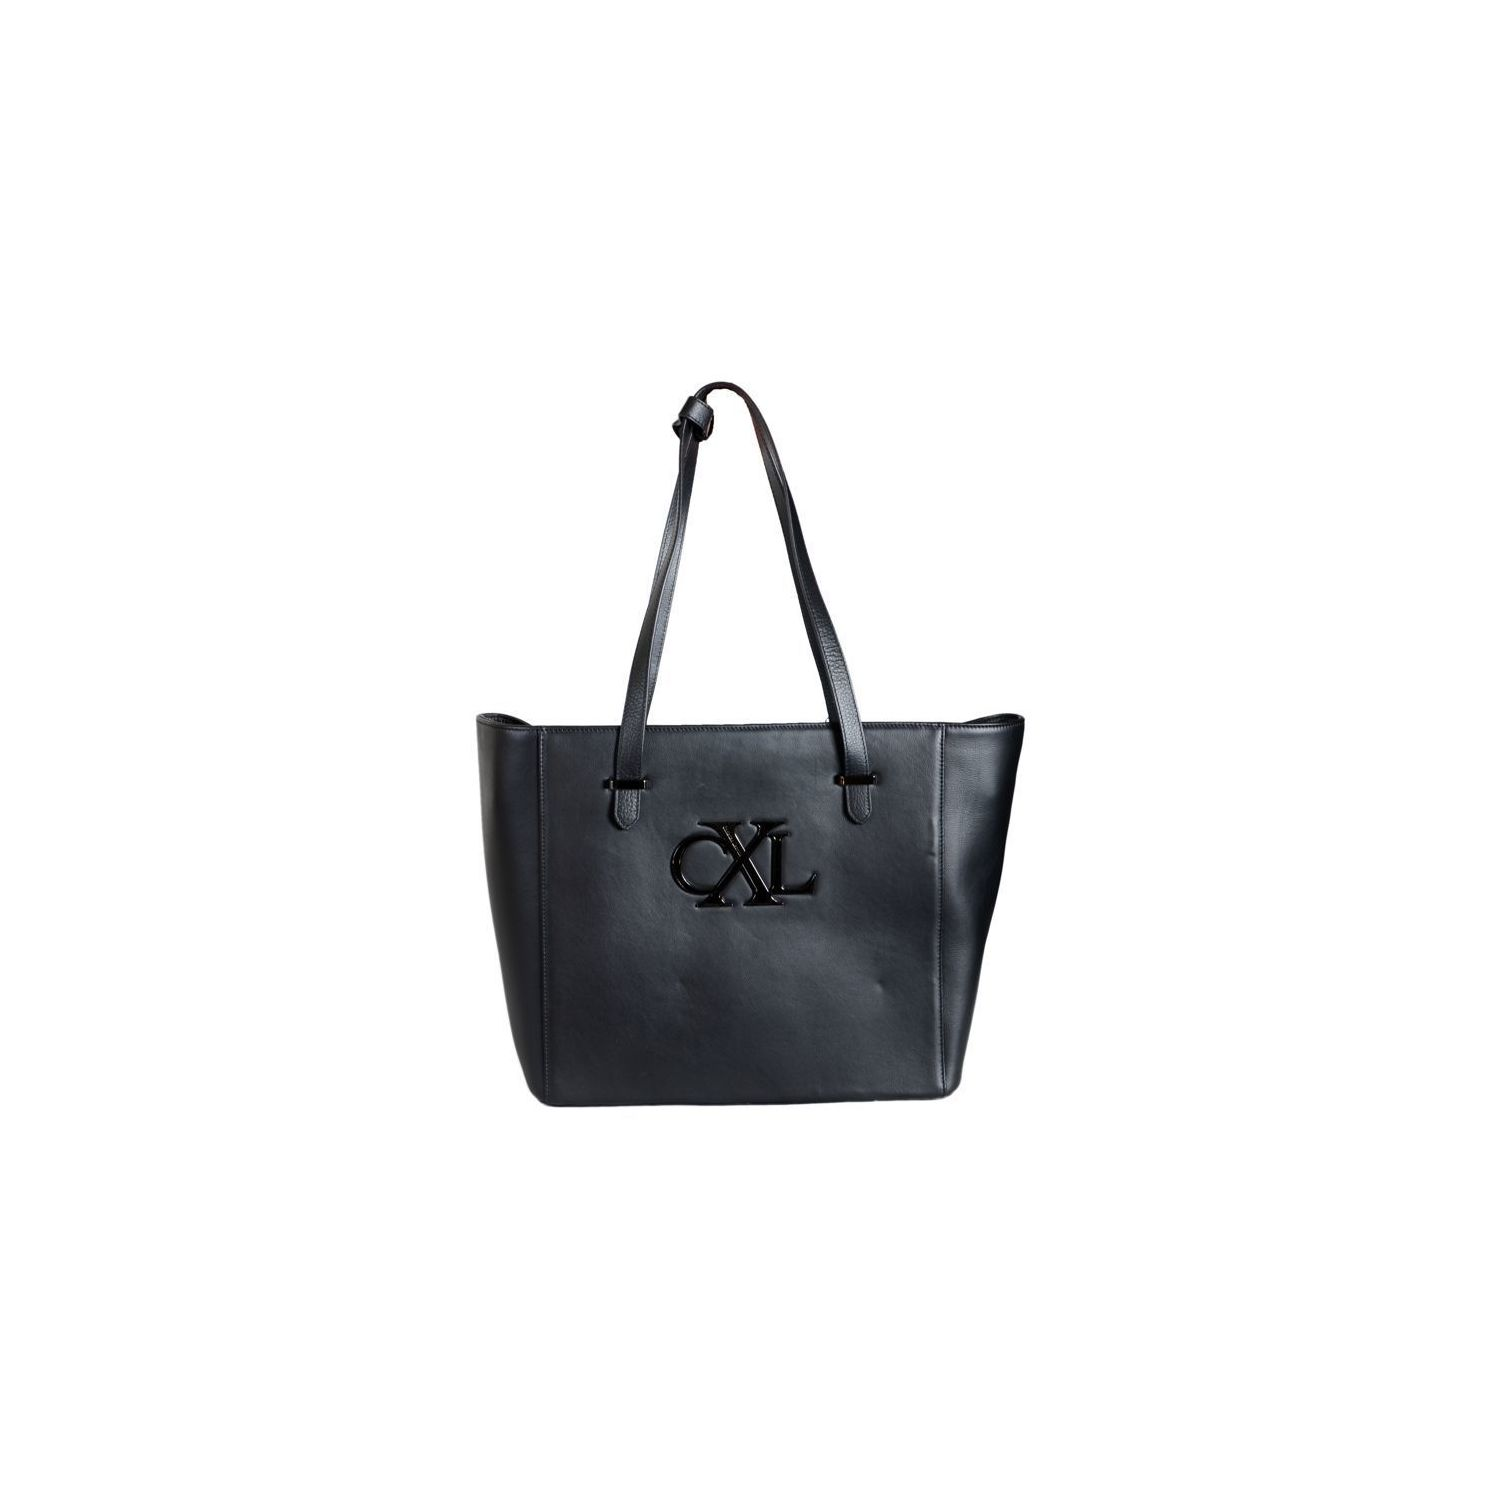 Sac Cabas Angie Guess Sac Cabas Guess Angie Youtube Youtube Anx7II